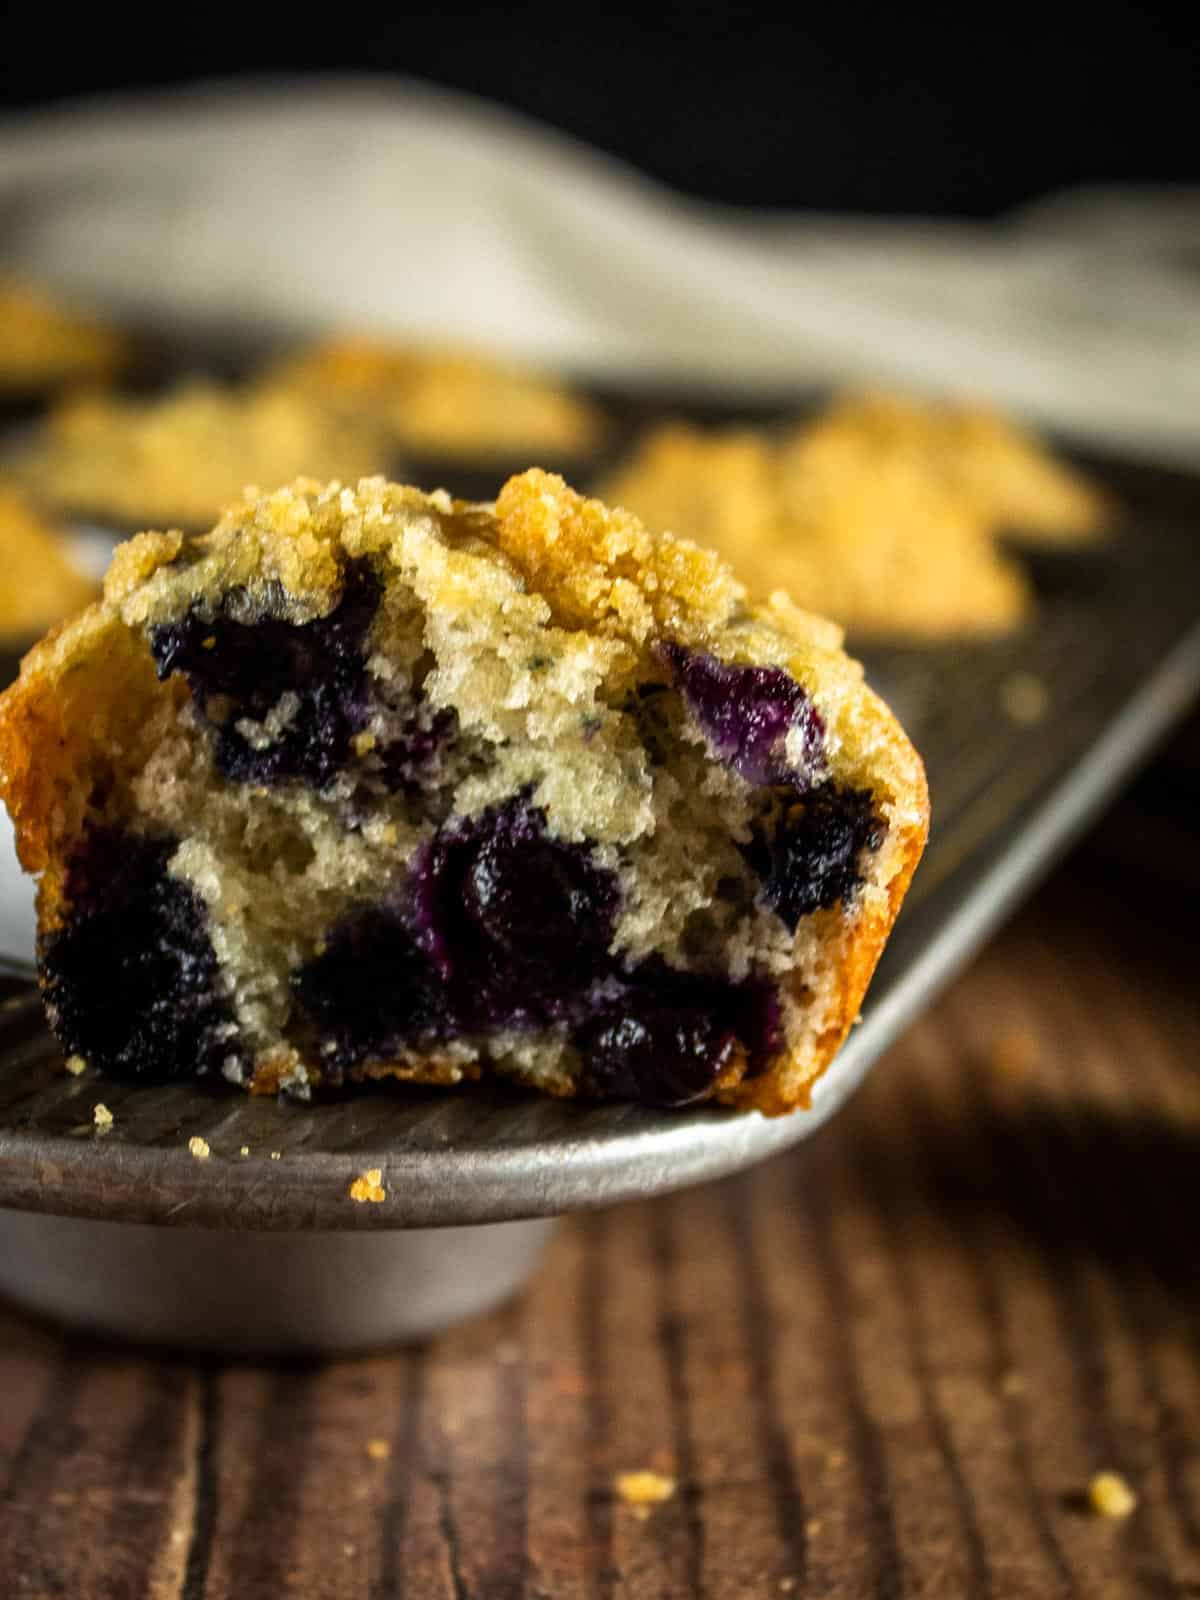 inside of a baked blueberry muffin